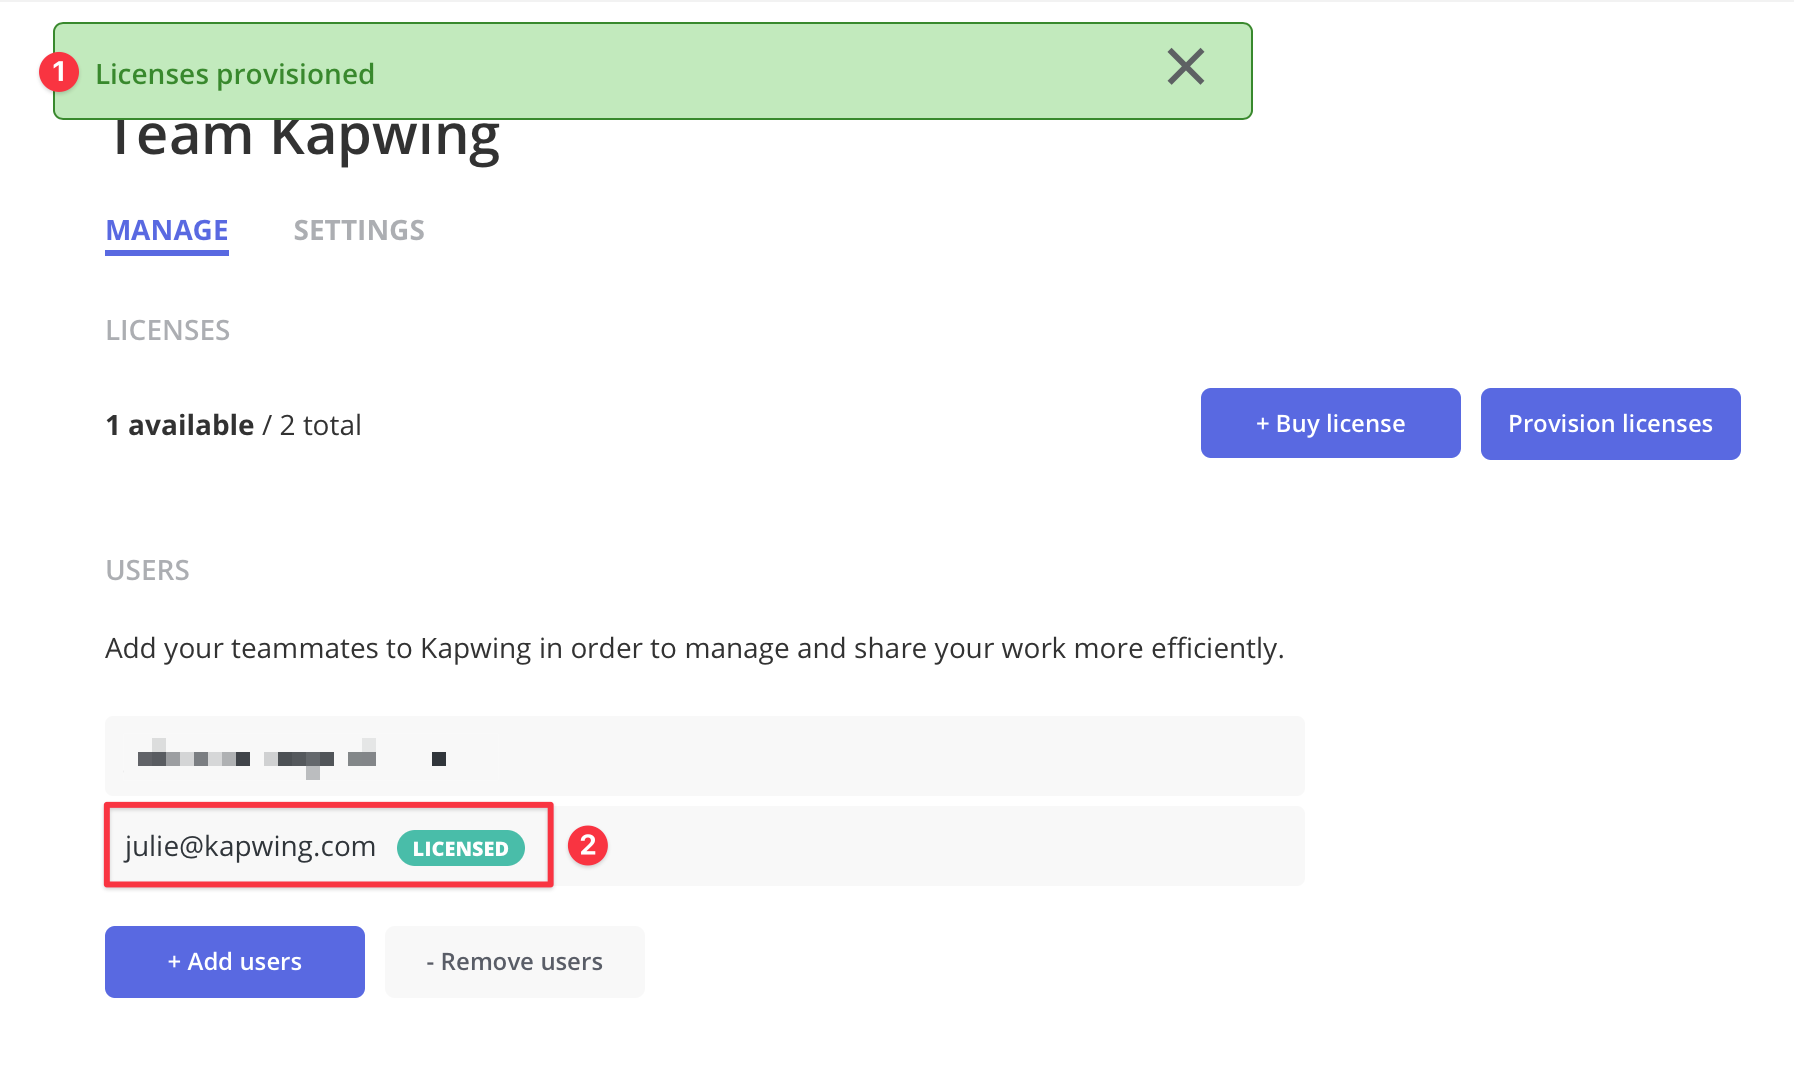 """A green confirmation toast message will appear to show licenses were successfully provisioned. You can also view a green """"Licensed"""" tag next to the email of provisioned team members.of"""